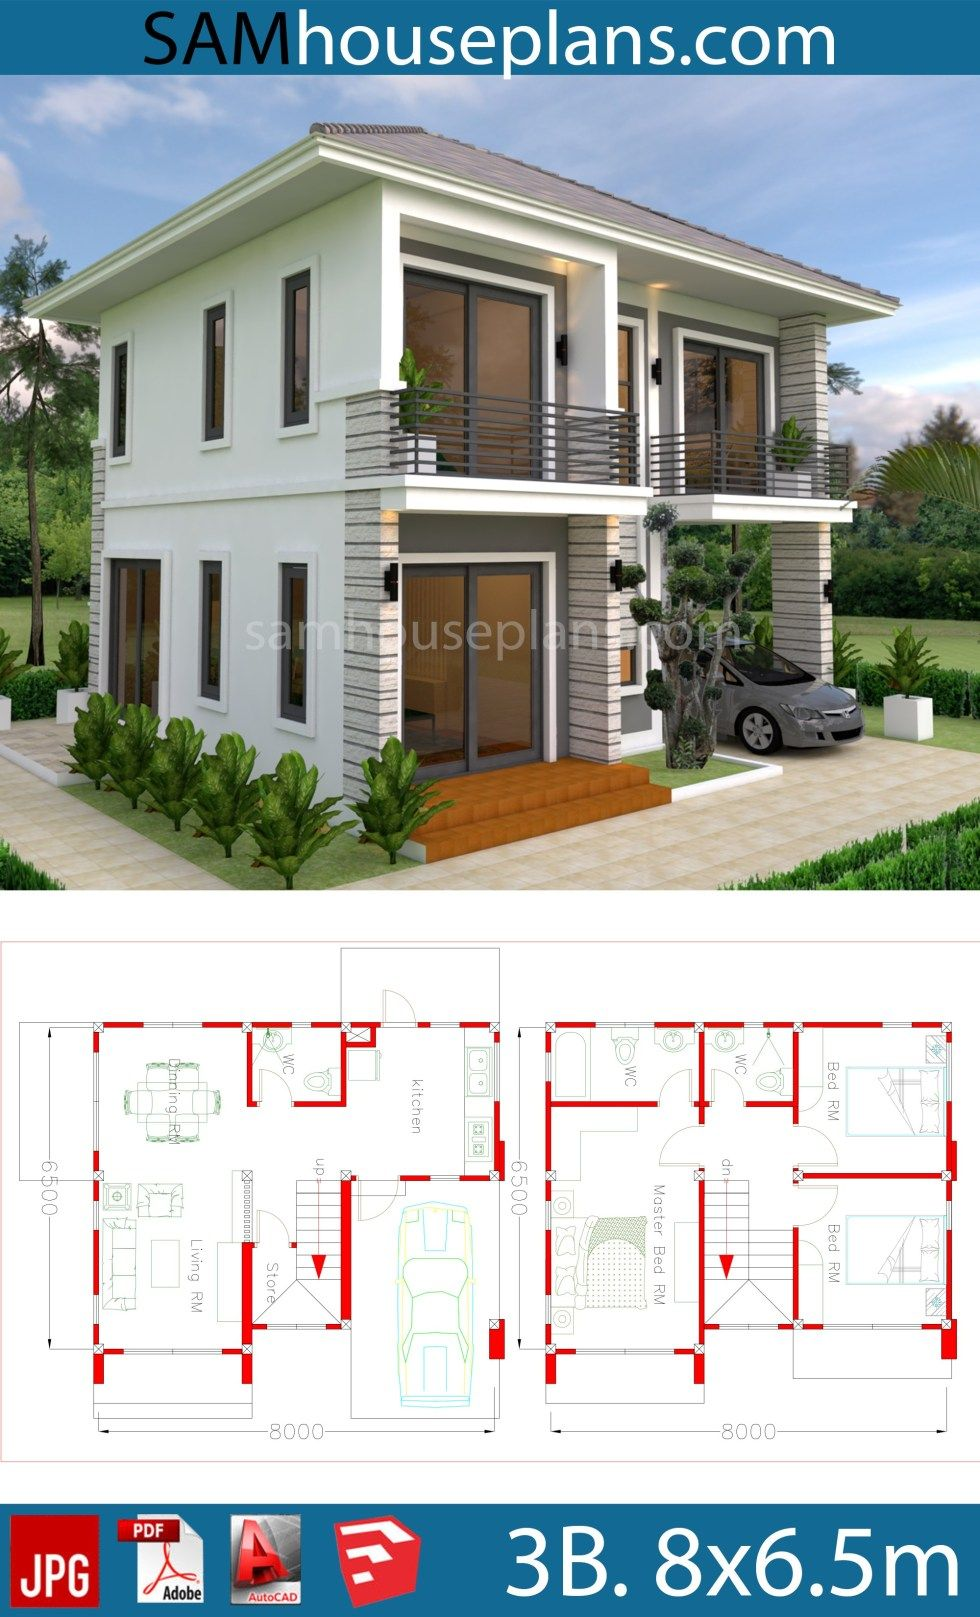 House Plans 8x6 5m With 3 Bedrooms Sam House Plans Square House Plans Model House Plan Architectural House Plans